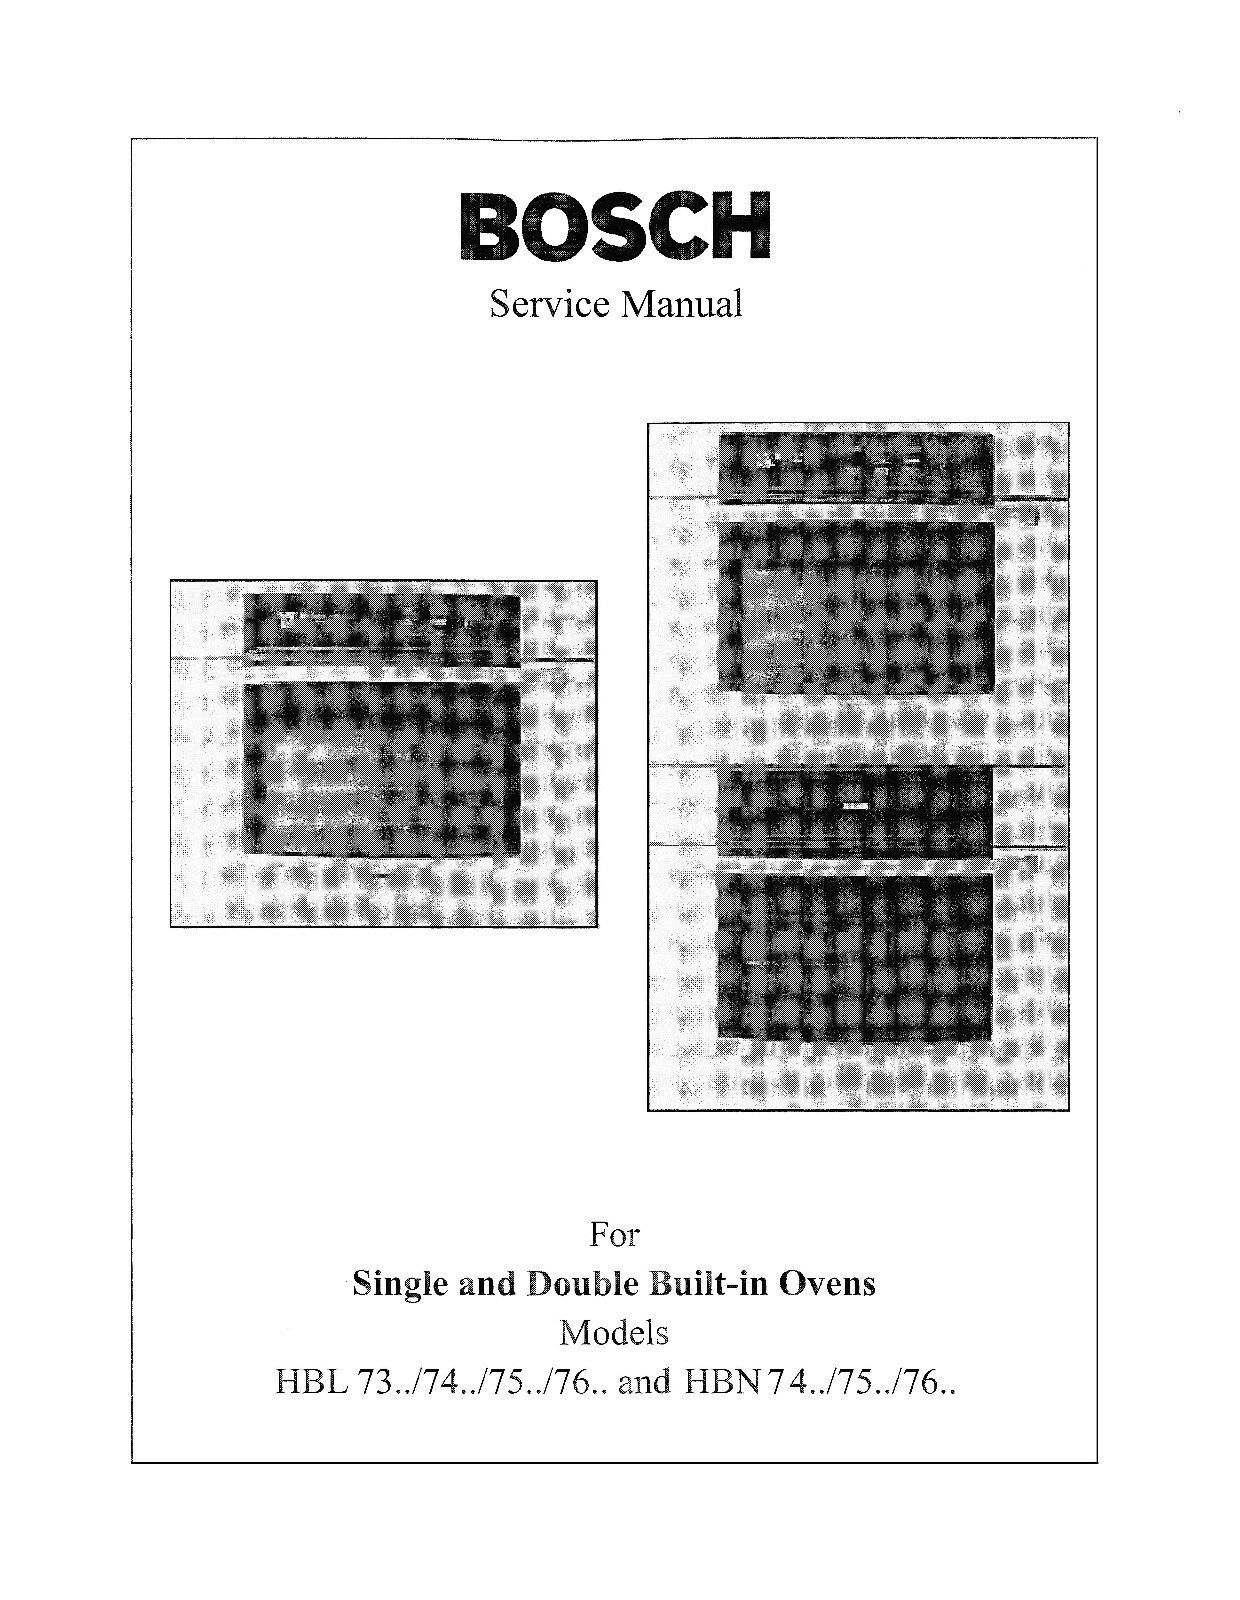 repair manual bosch ovens cooktops choice of 1 manual models in rh picclick co uk bosch oven manual hbl57m52uc bosch oven manual hbl57m52uc